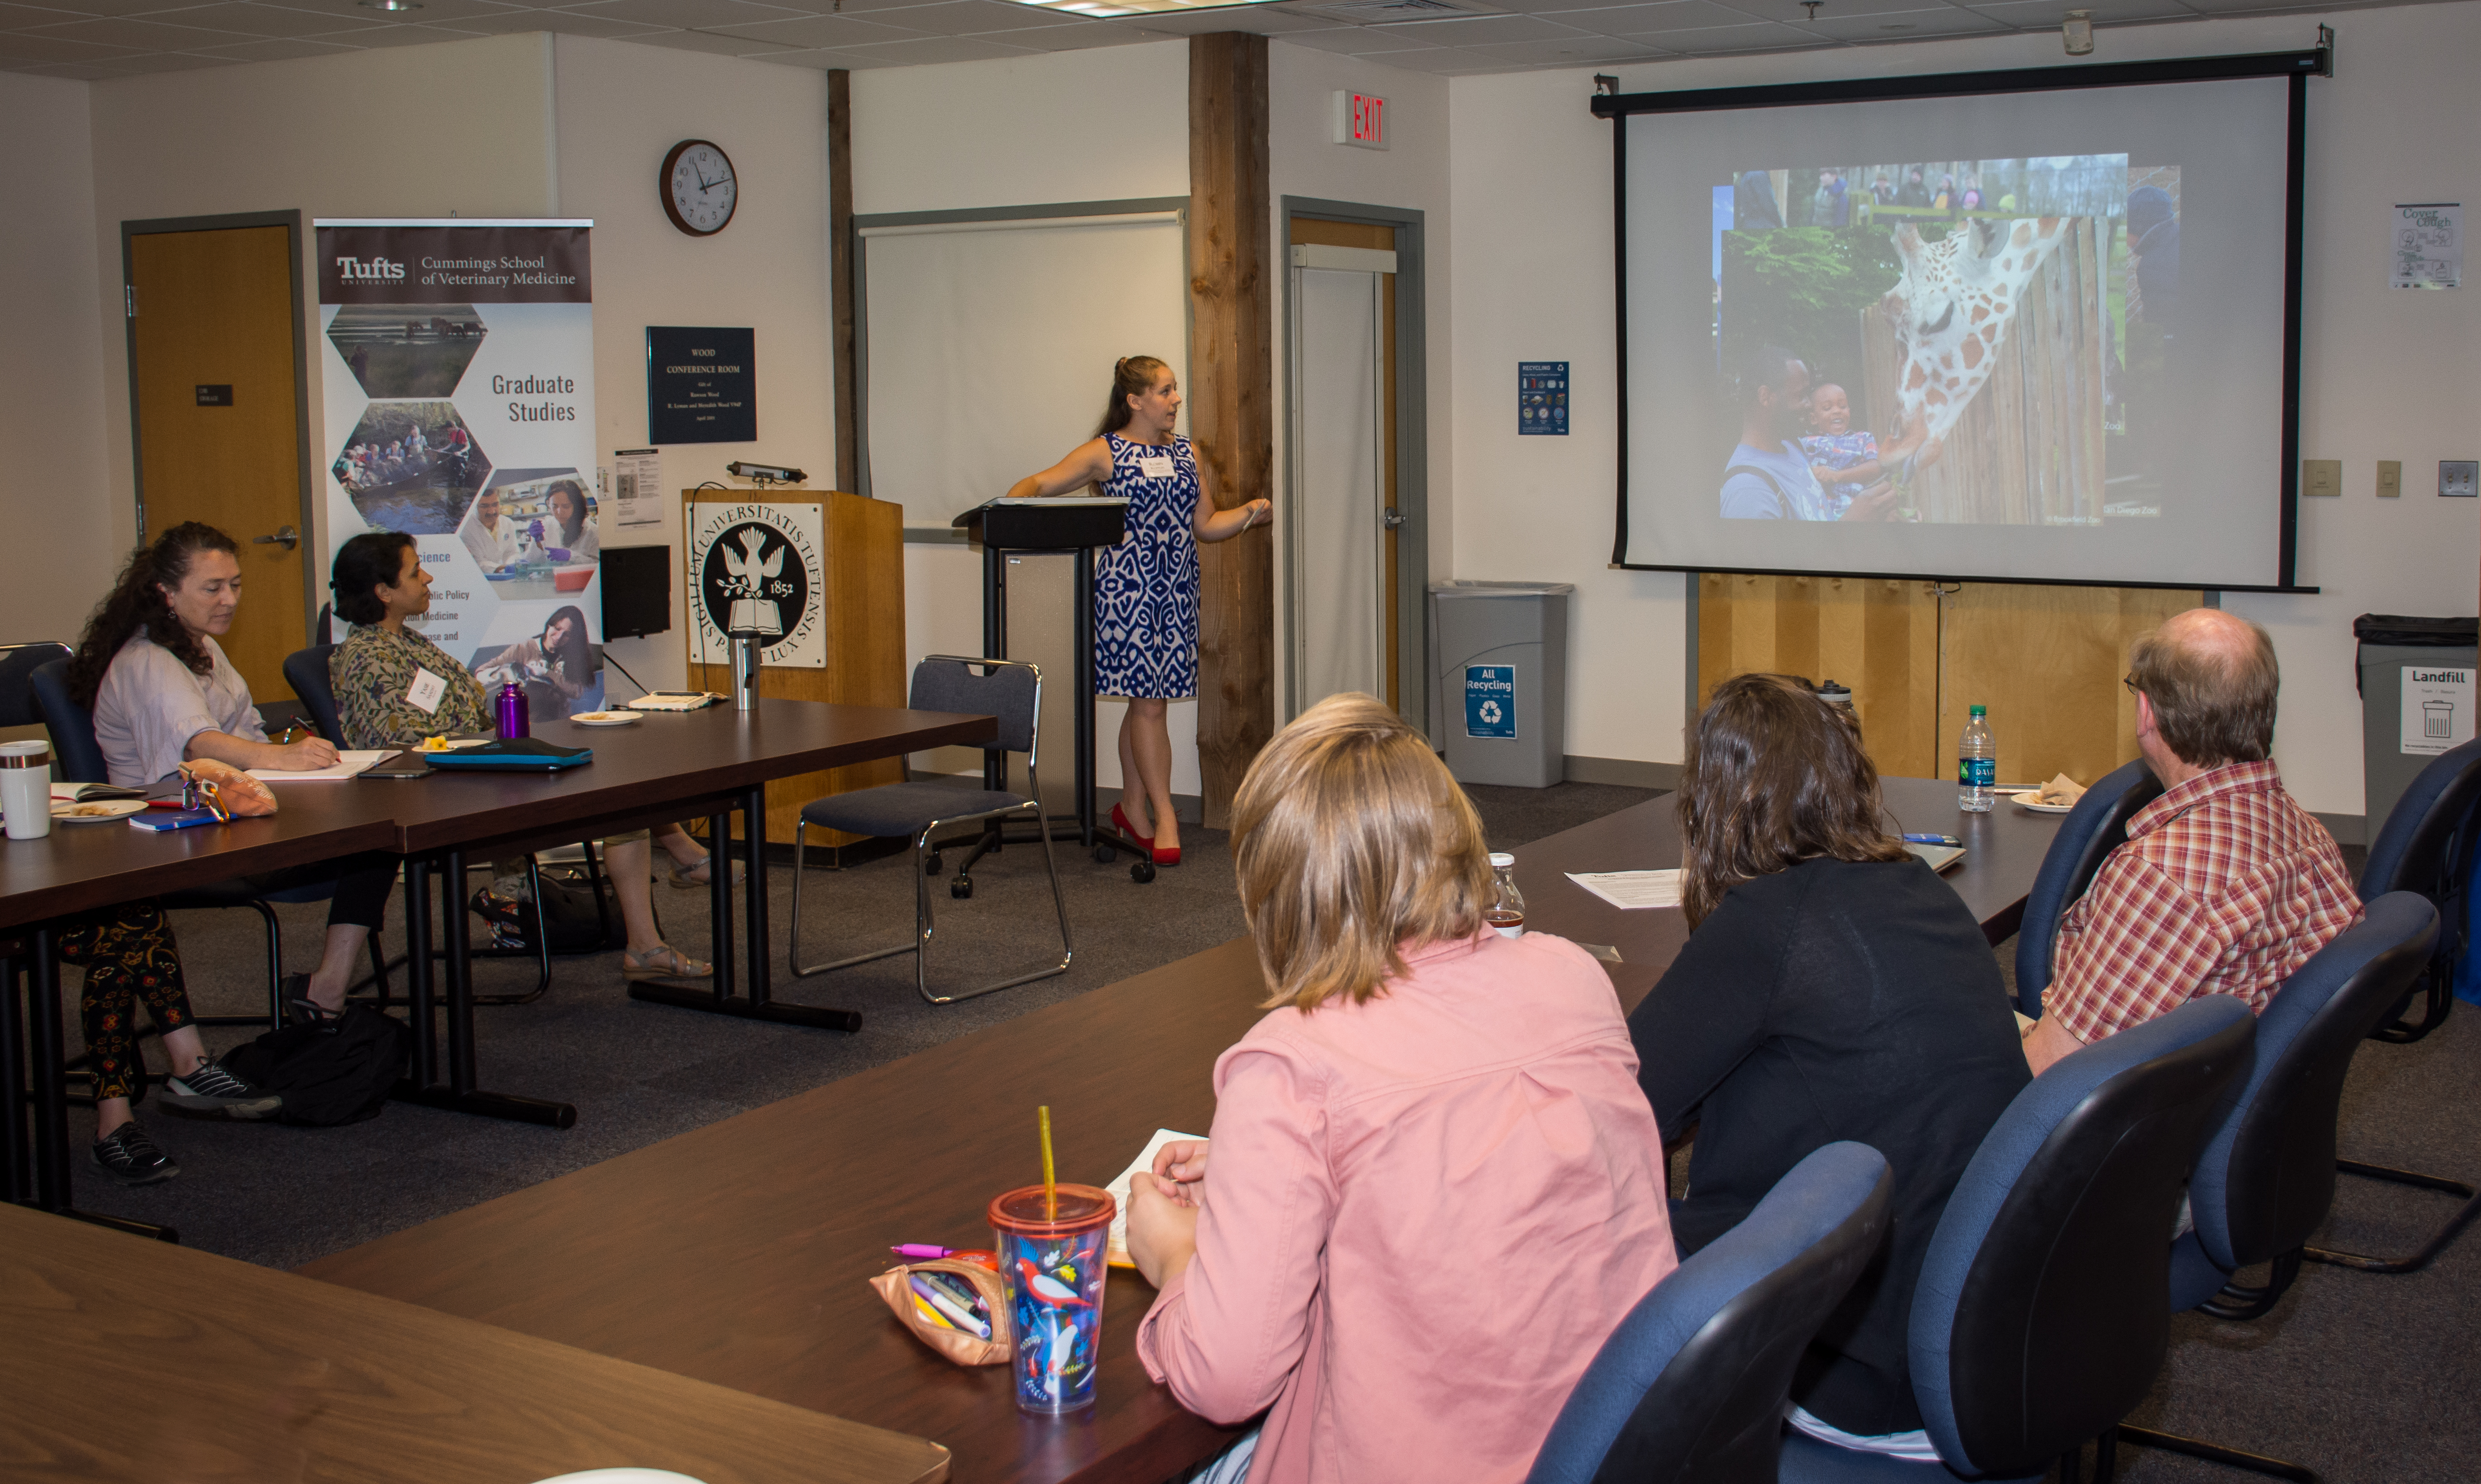 Summer Short Course: Animals and Society 2018 - MAPP student, Robin Kopplin spoke about evaluating welfare in giraffe feeding encounter programs.